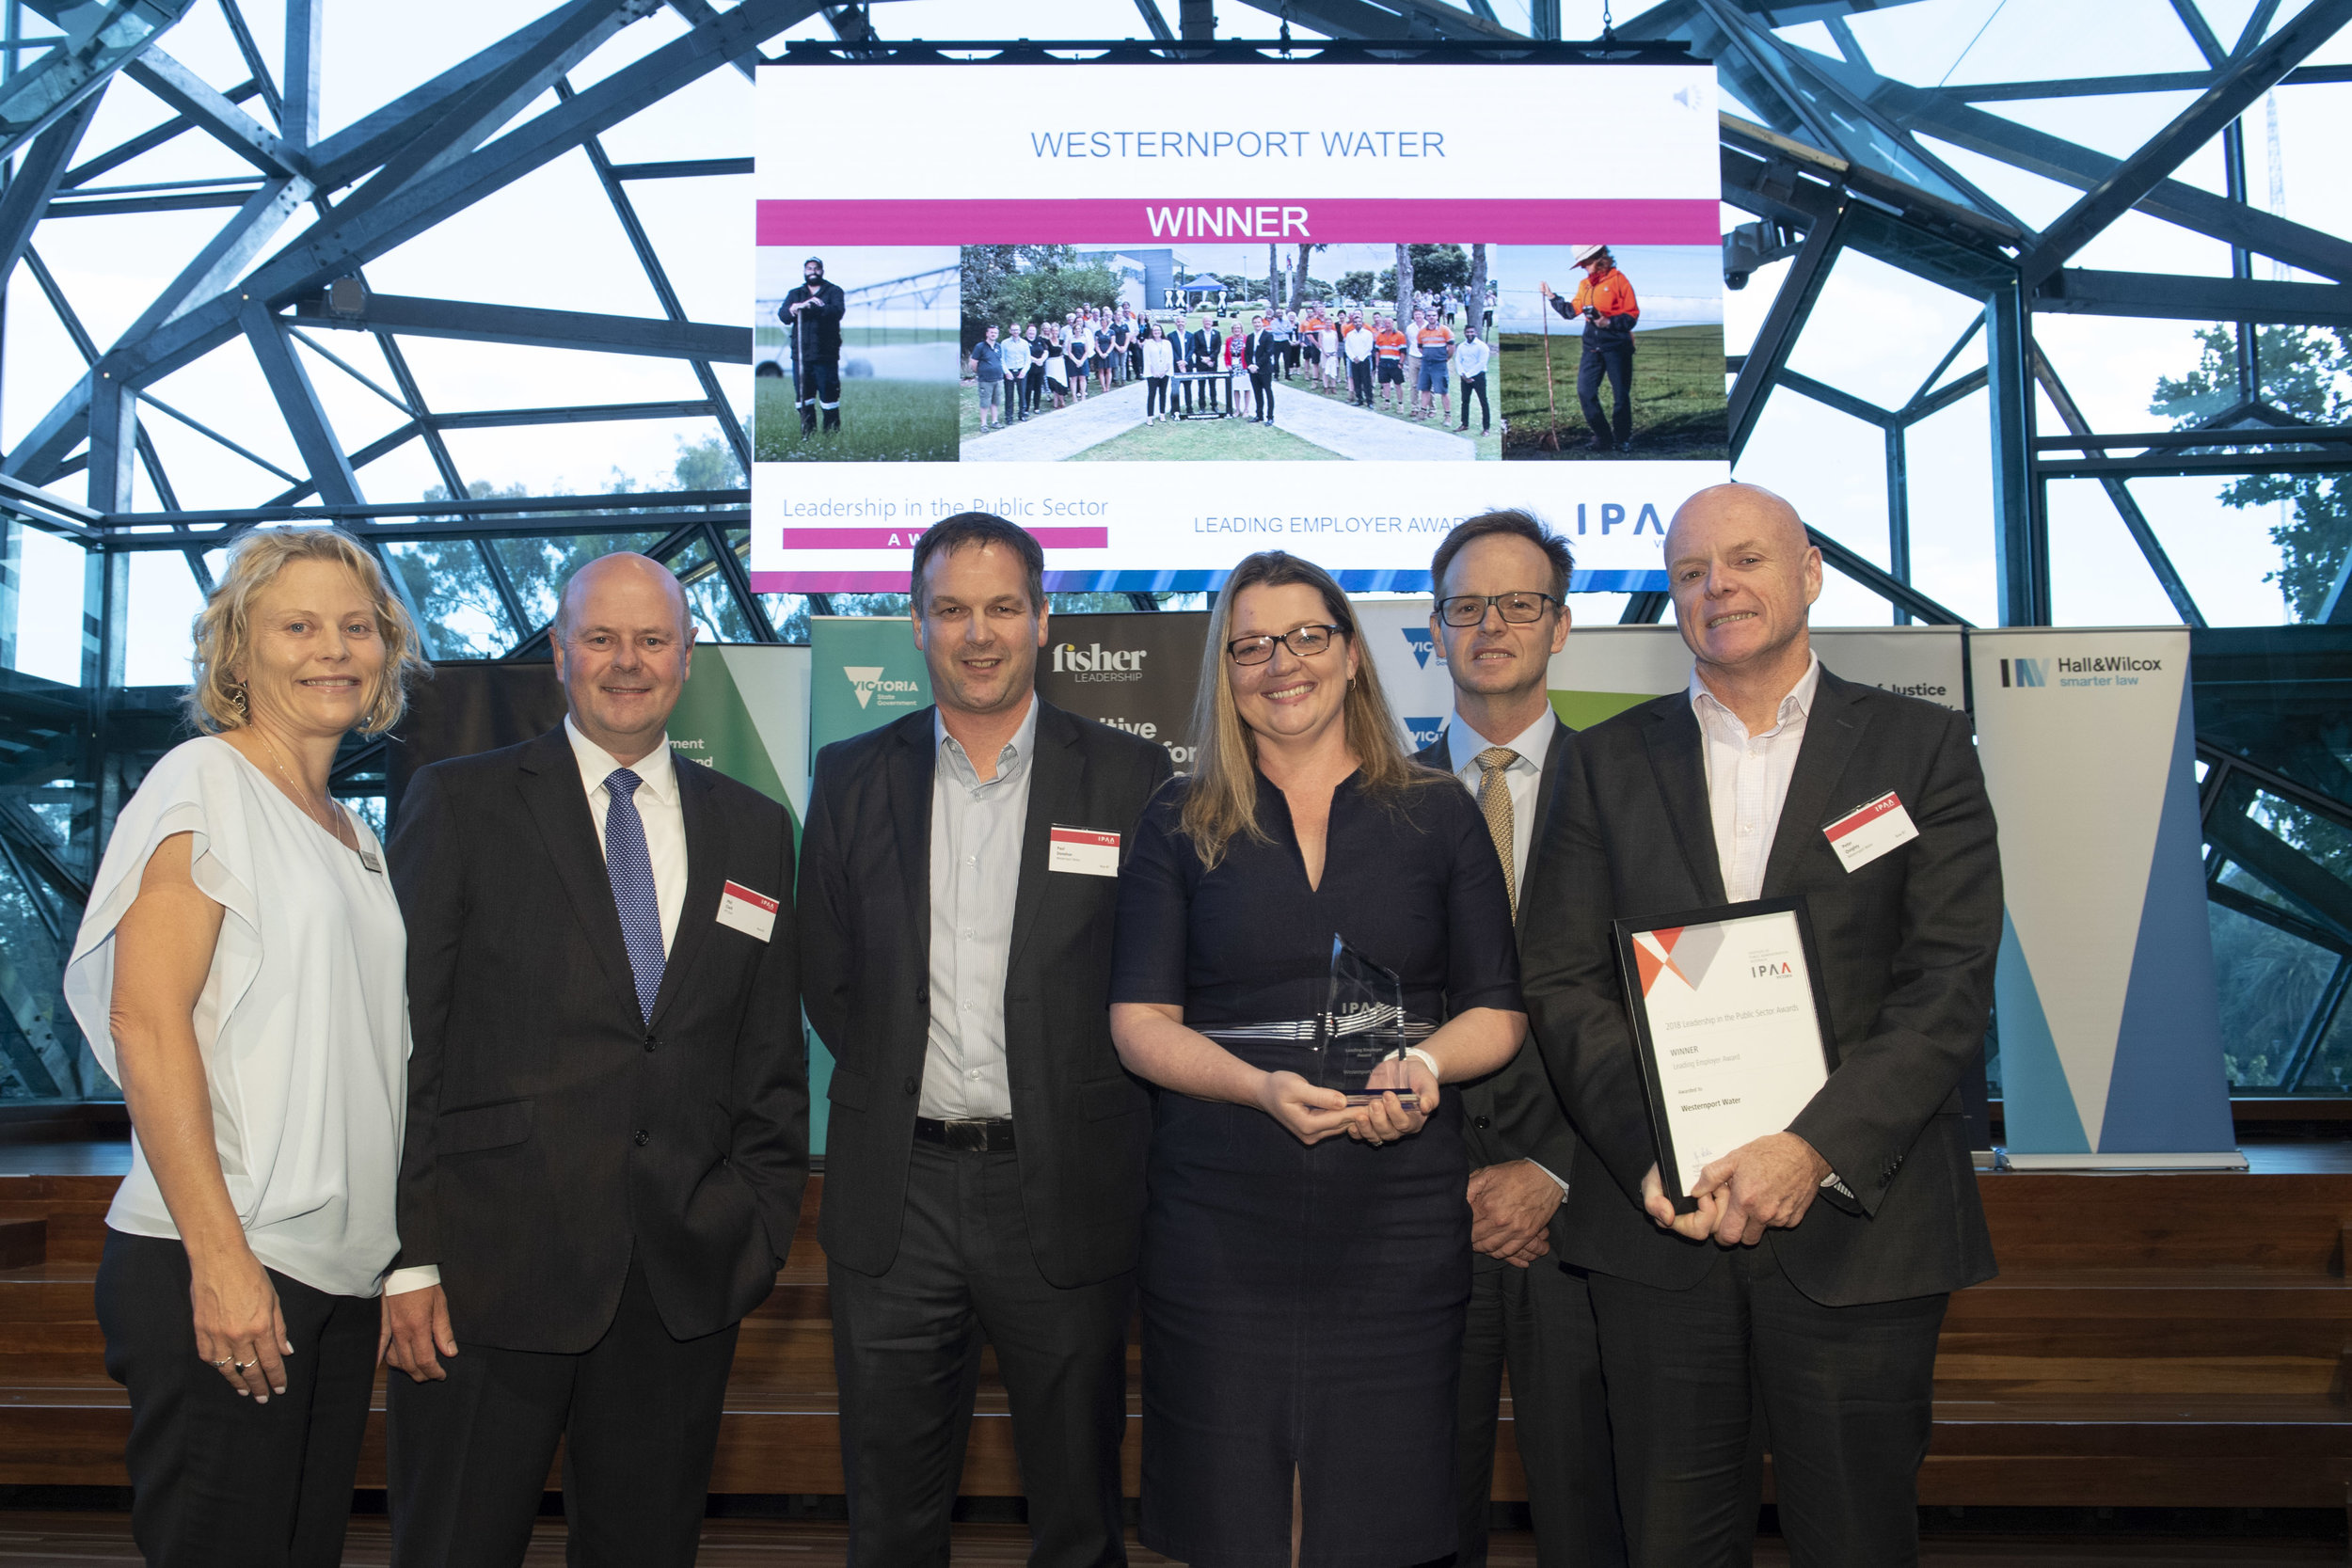 Westernport Water won the Leading Employer award at the 2018 IPAA Victoria Leadership in the Public Sector Awards.